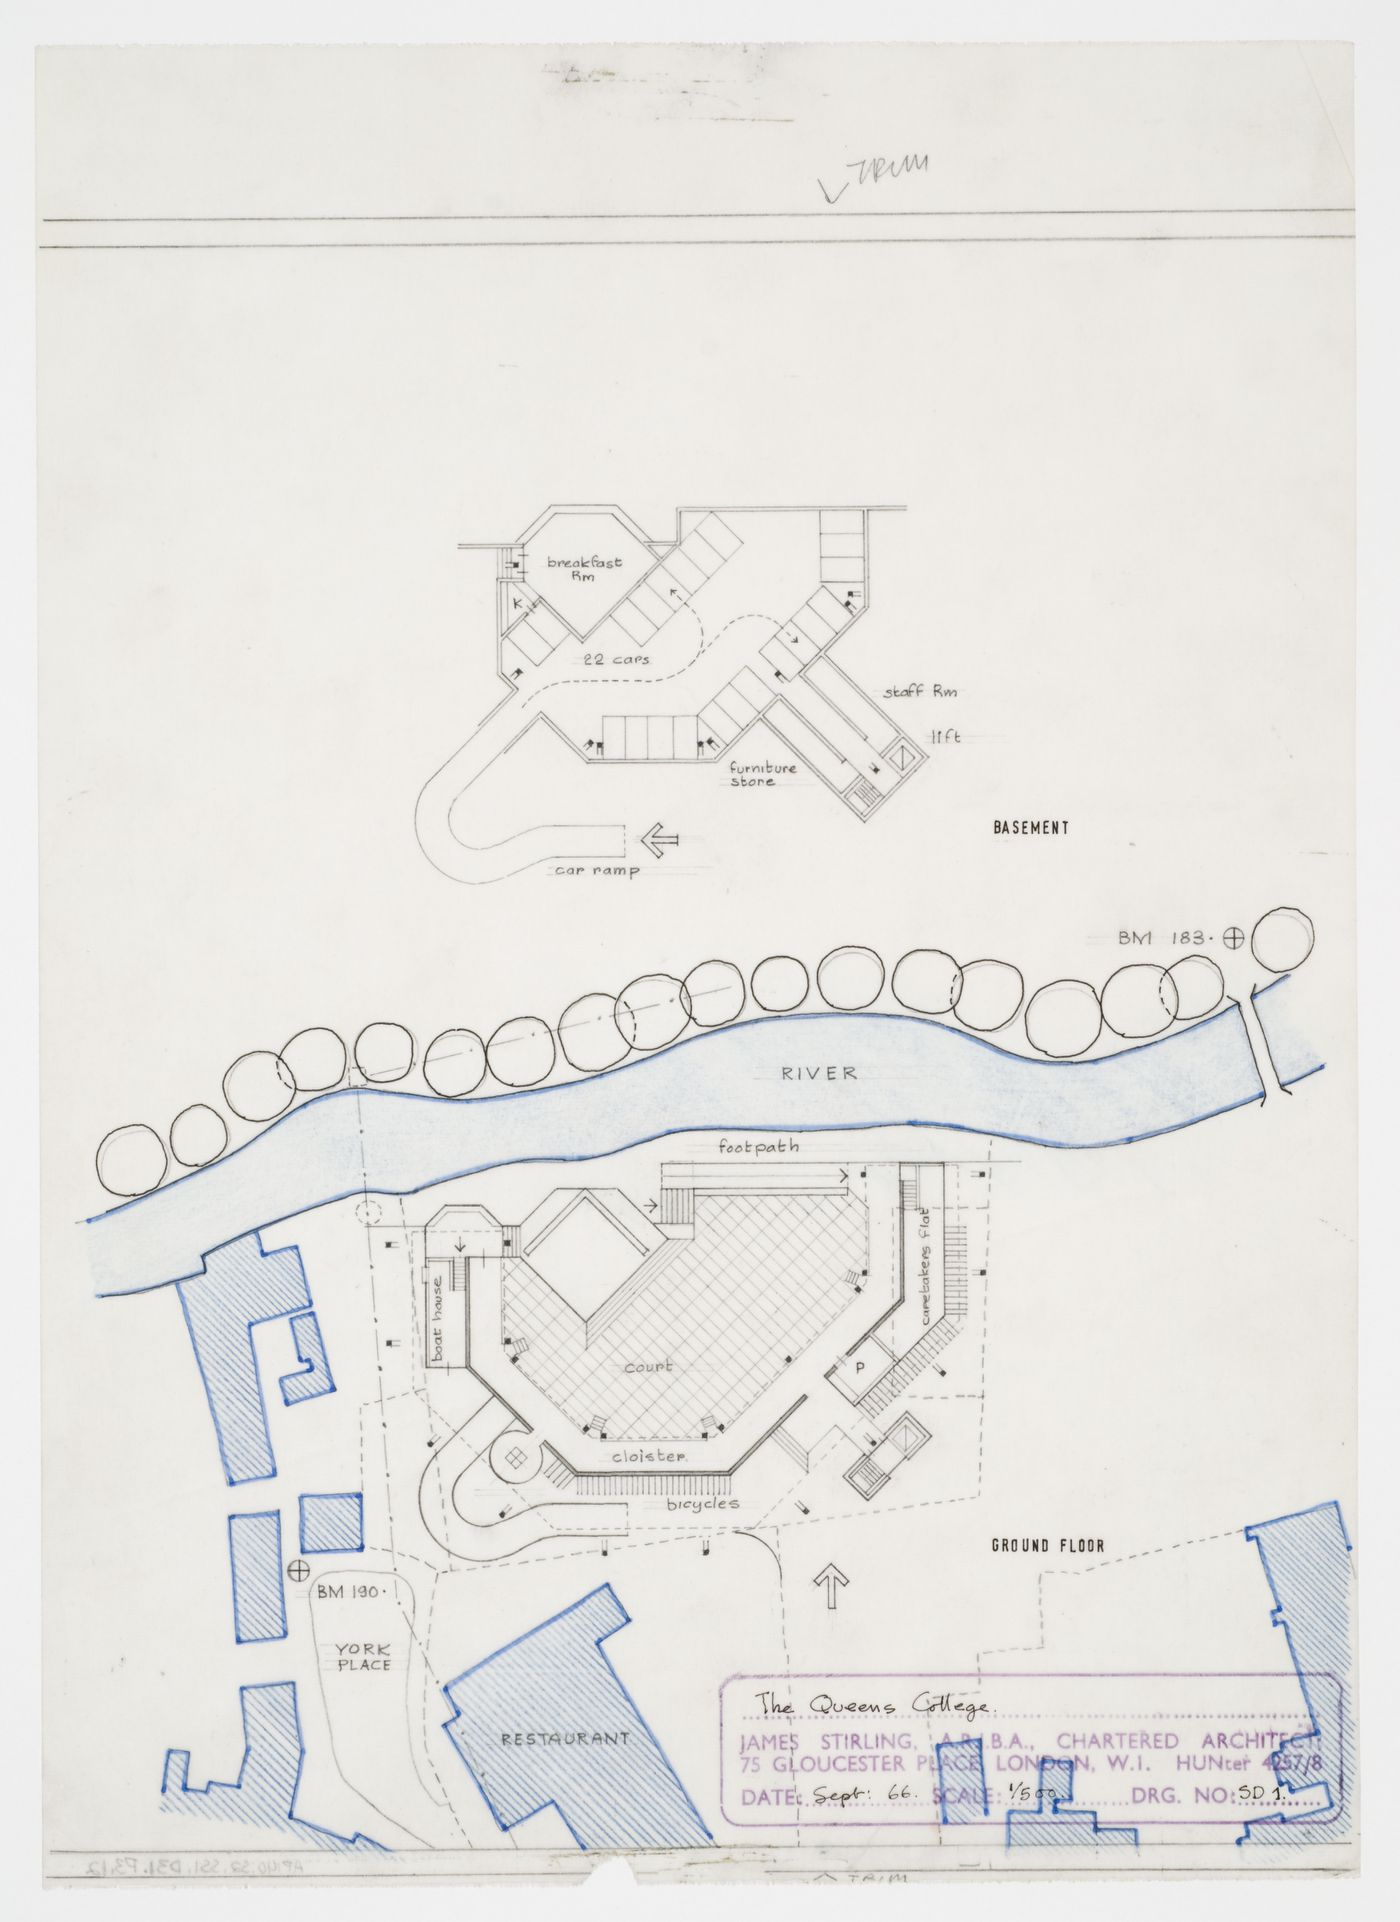 Florey Building, Queen's College, University of Oxford, Oxford, England: plans